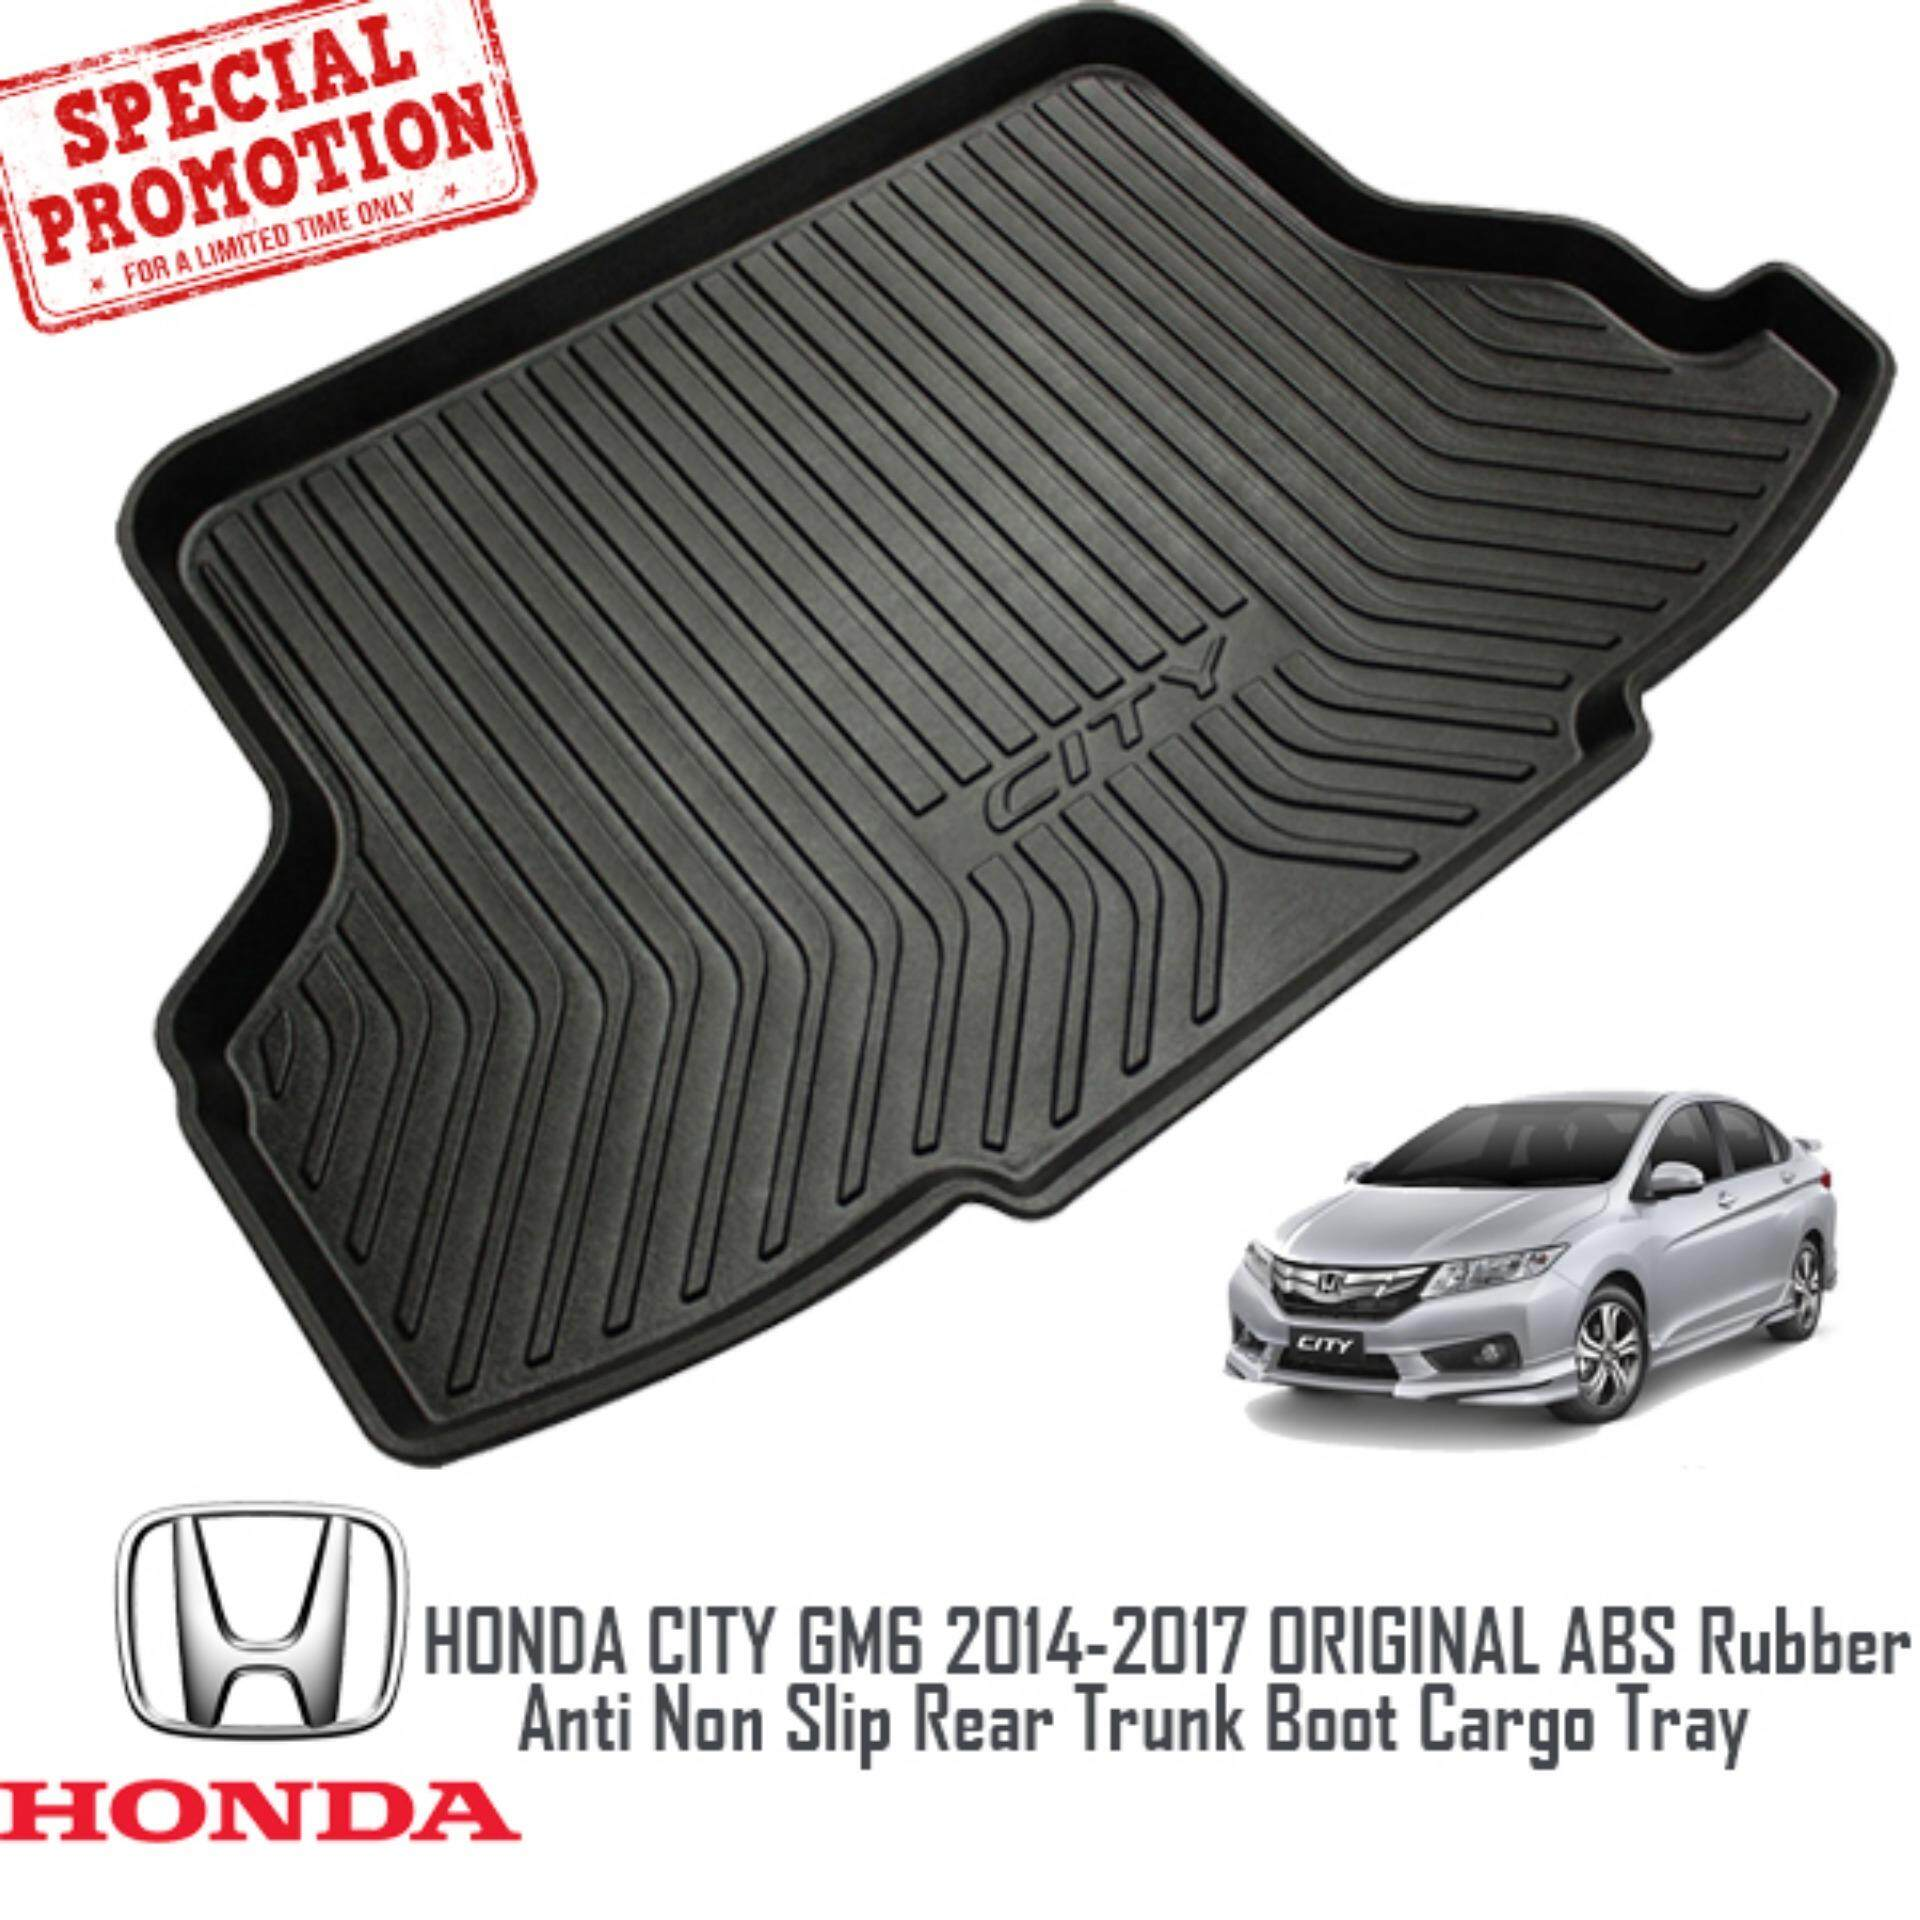 HONDA CITY GM6 2014 - 2017 ORIGINAL ABS Rubber Anti Non Slip Rear Trunk Boot Cargo Tray